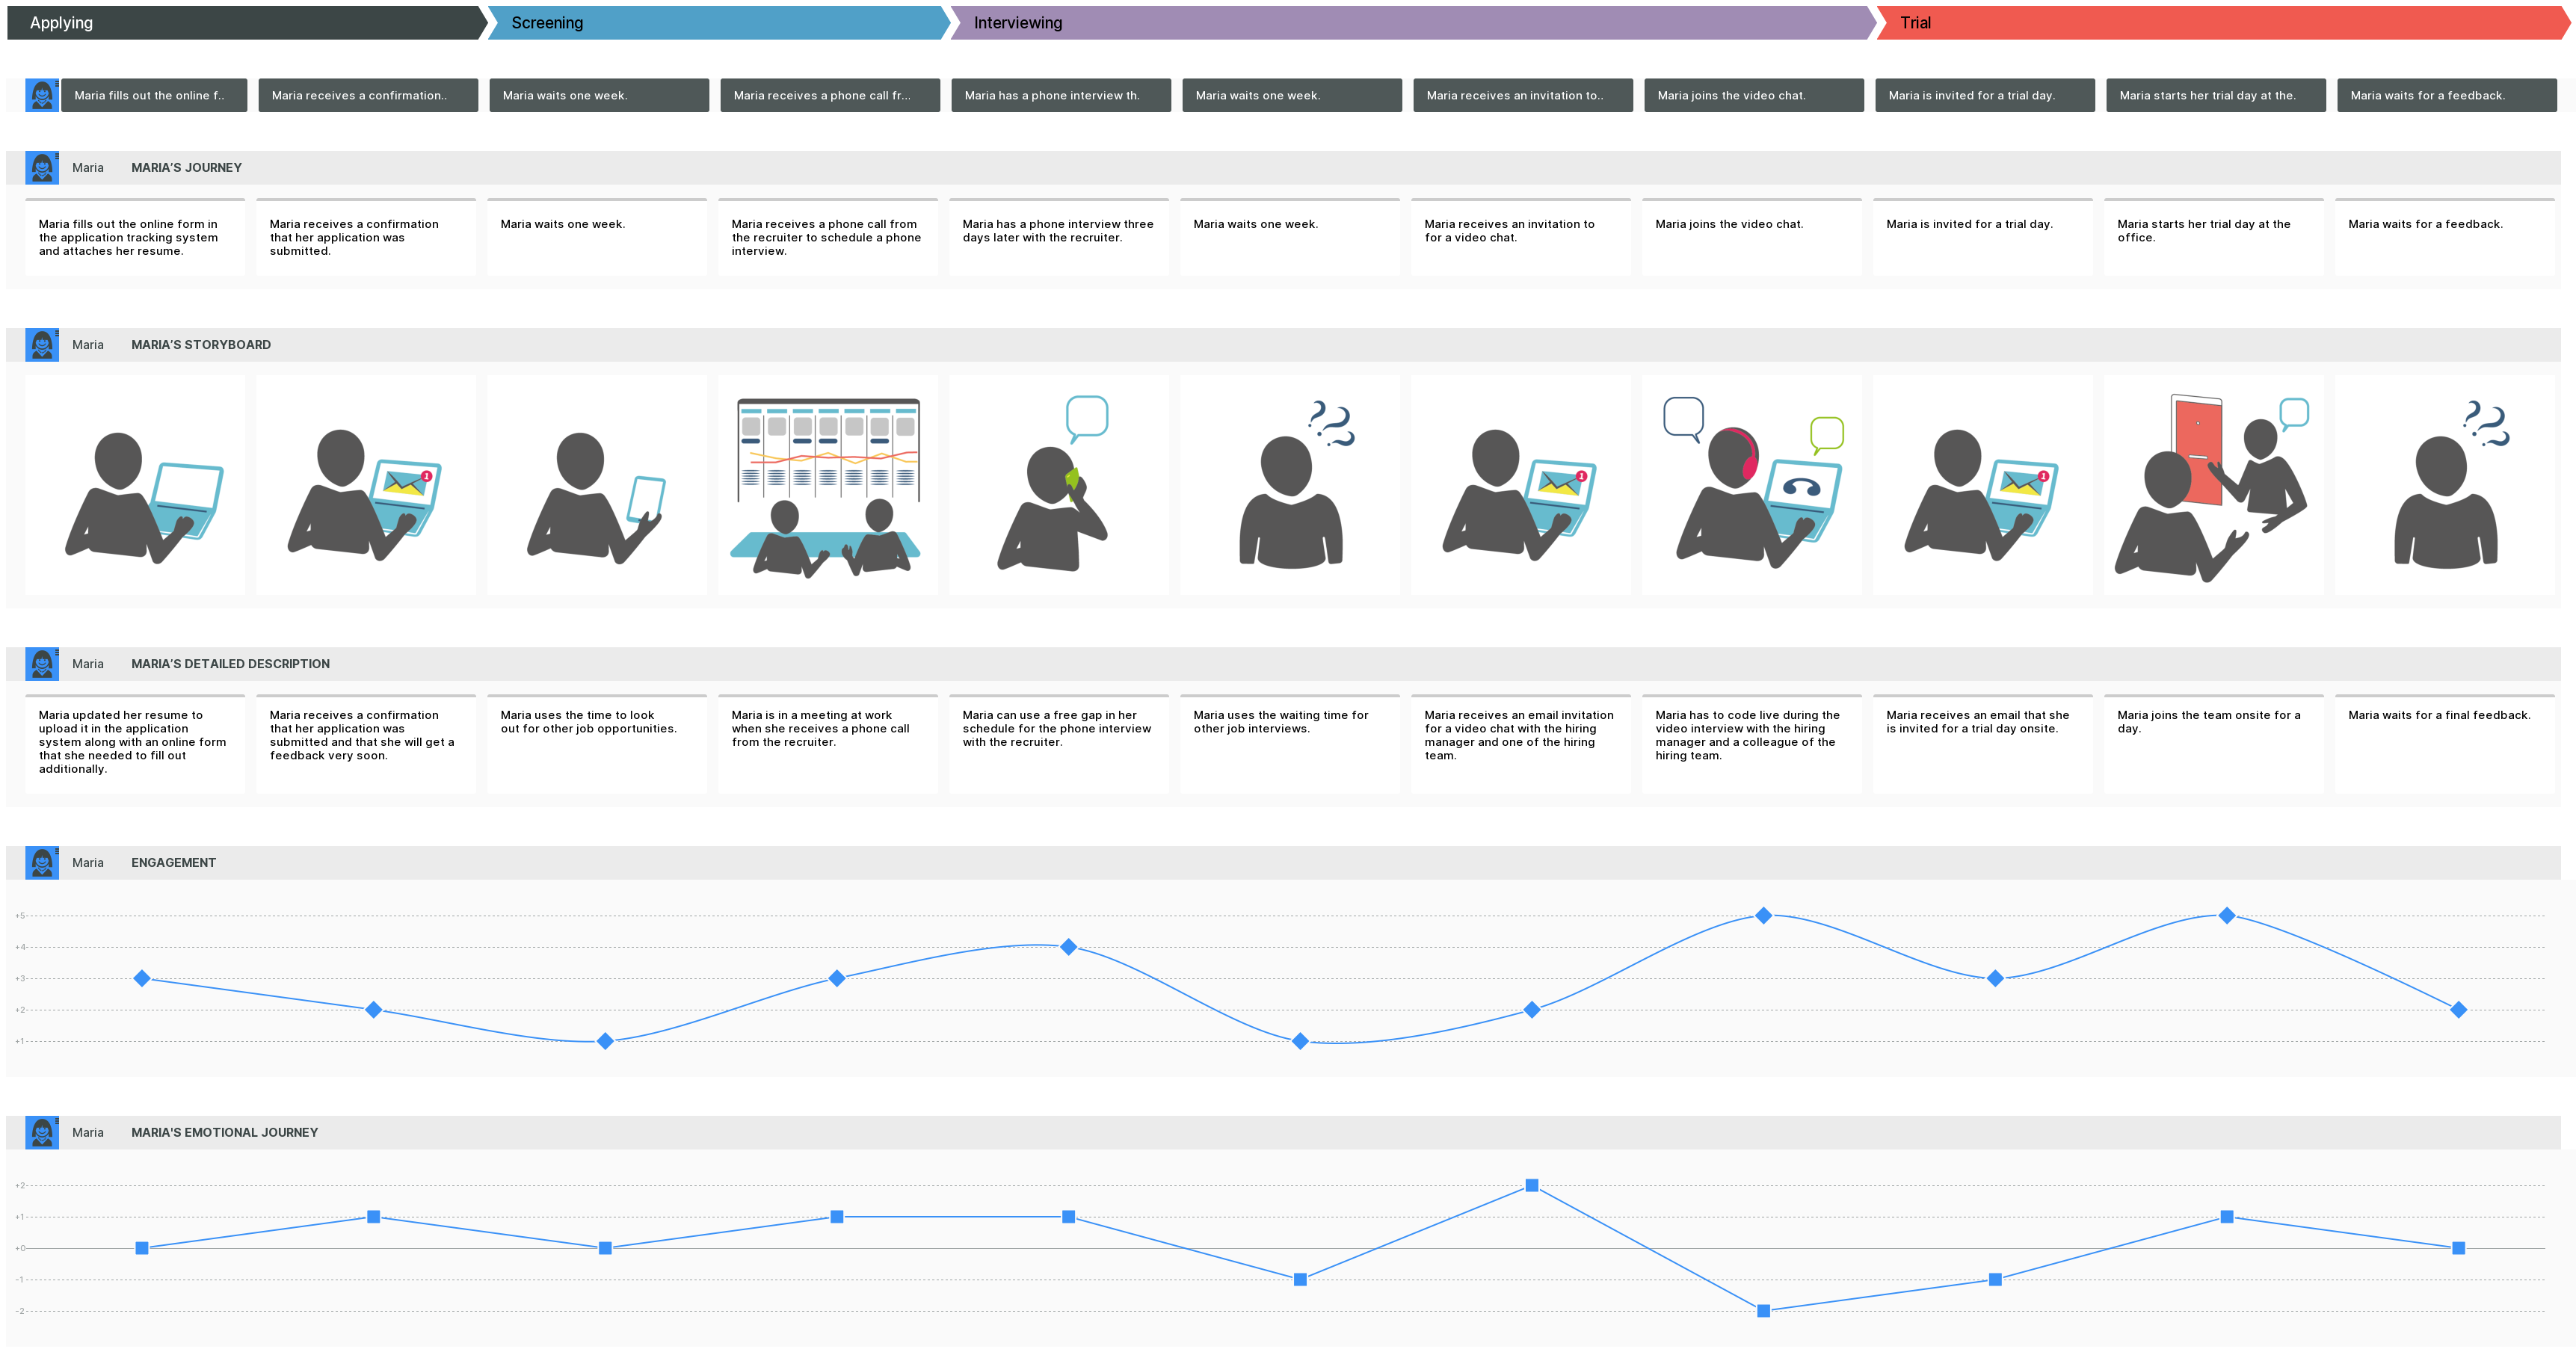 employee journey map created in smaply visualizing the experience of an employee in the application phase